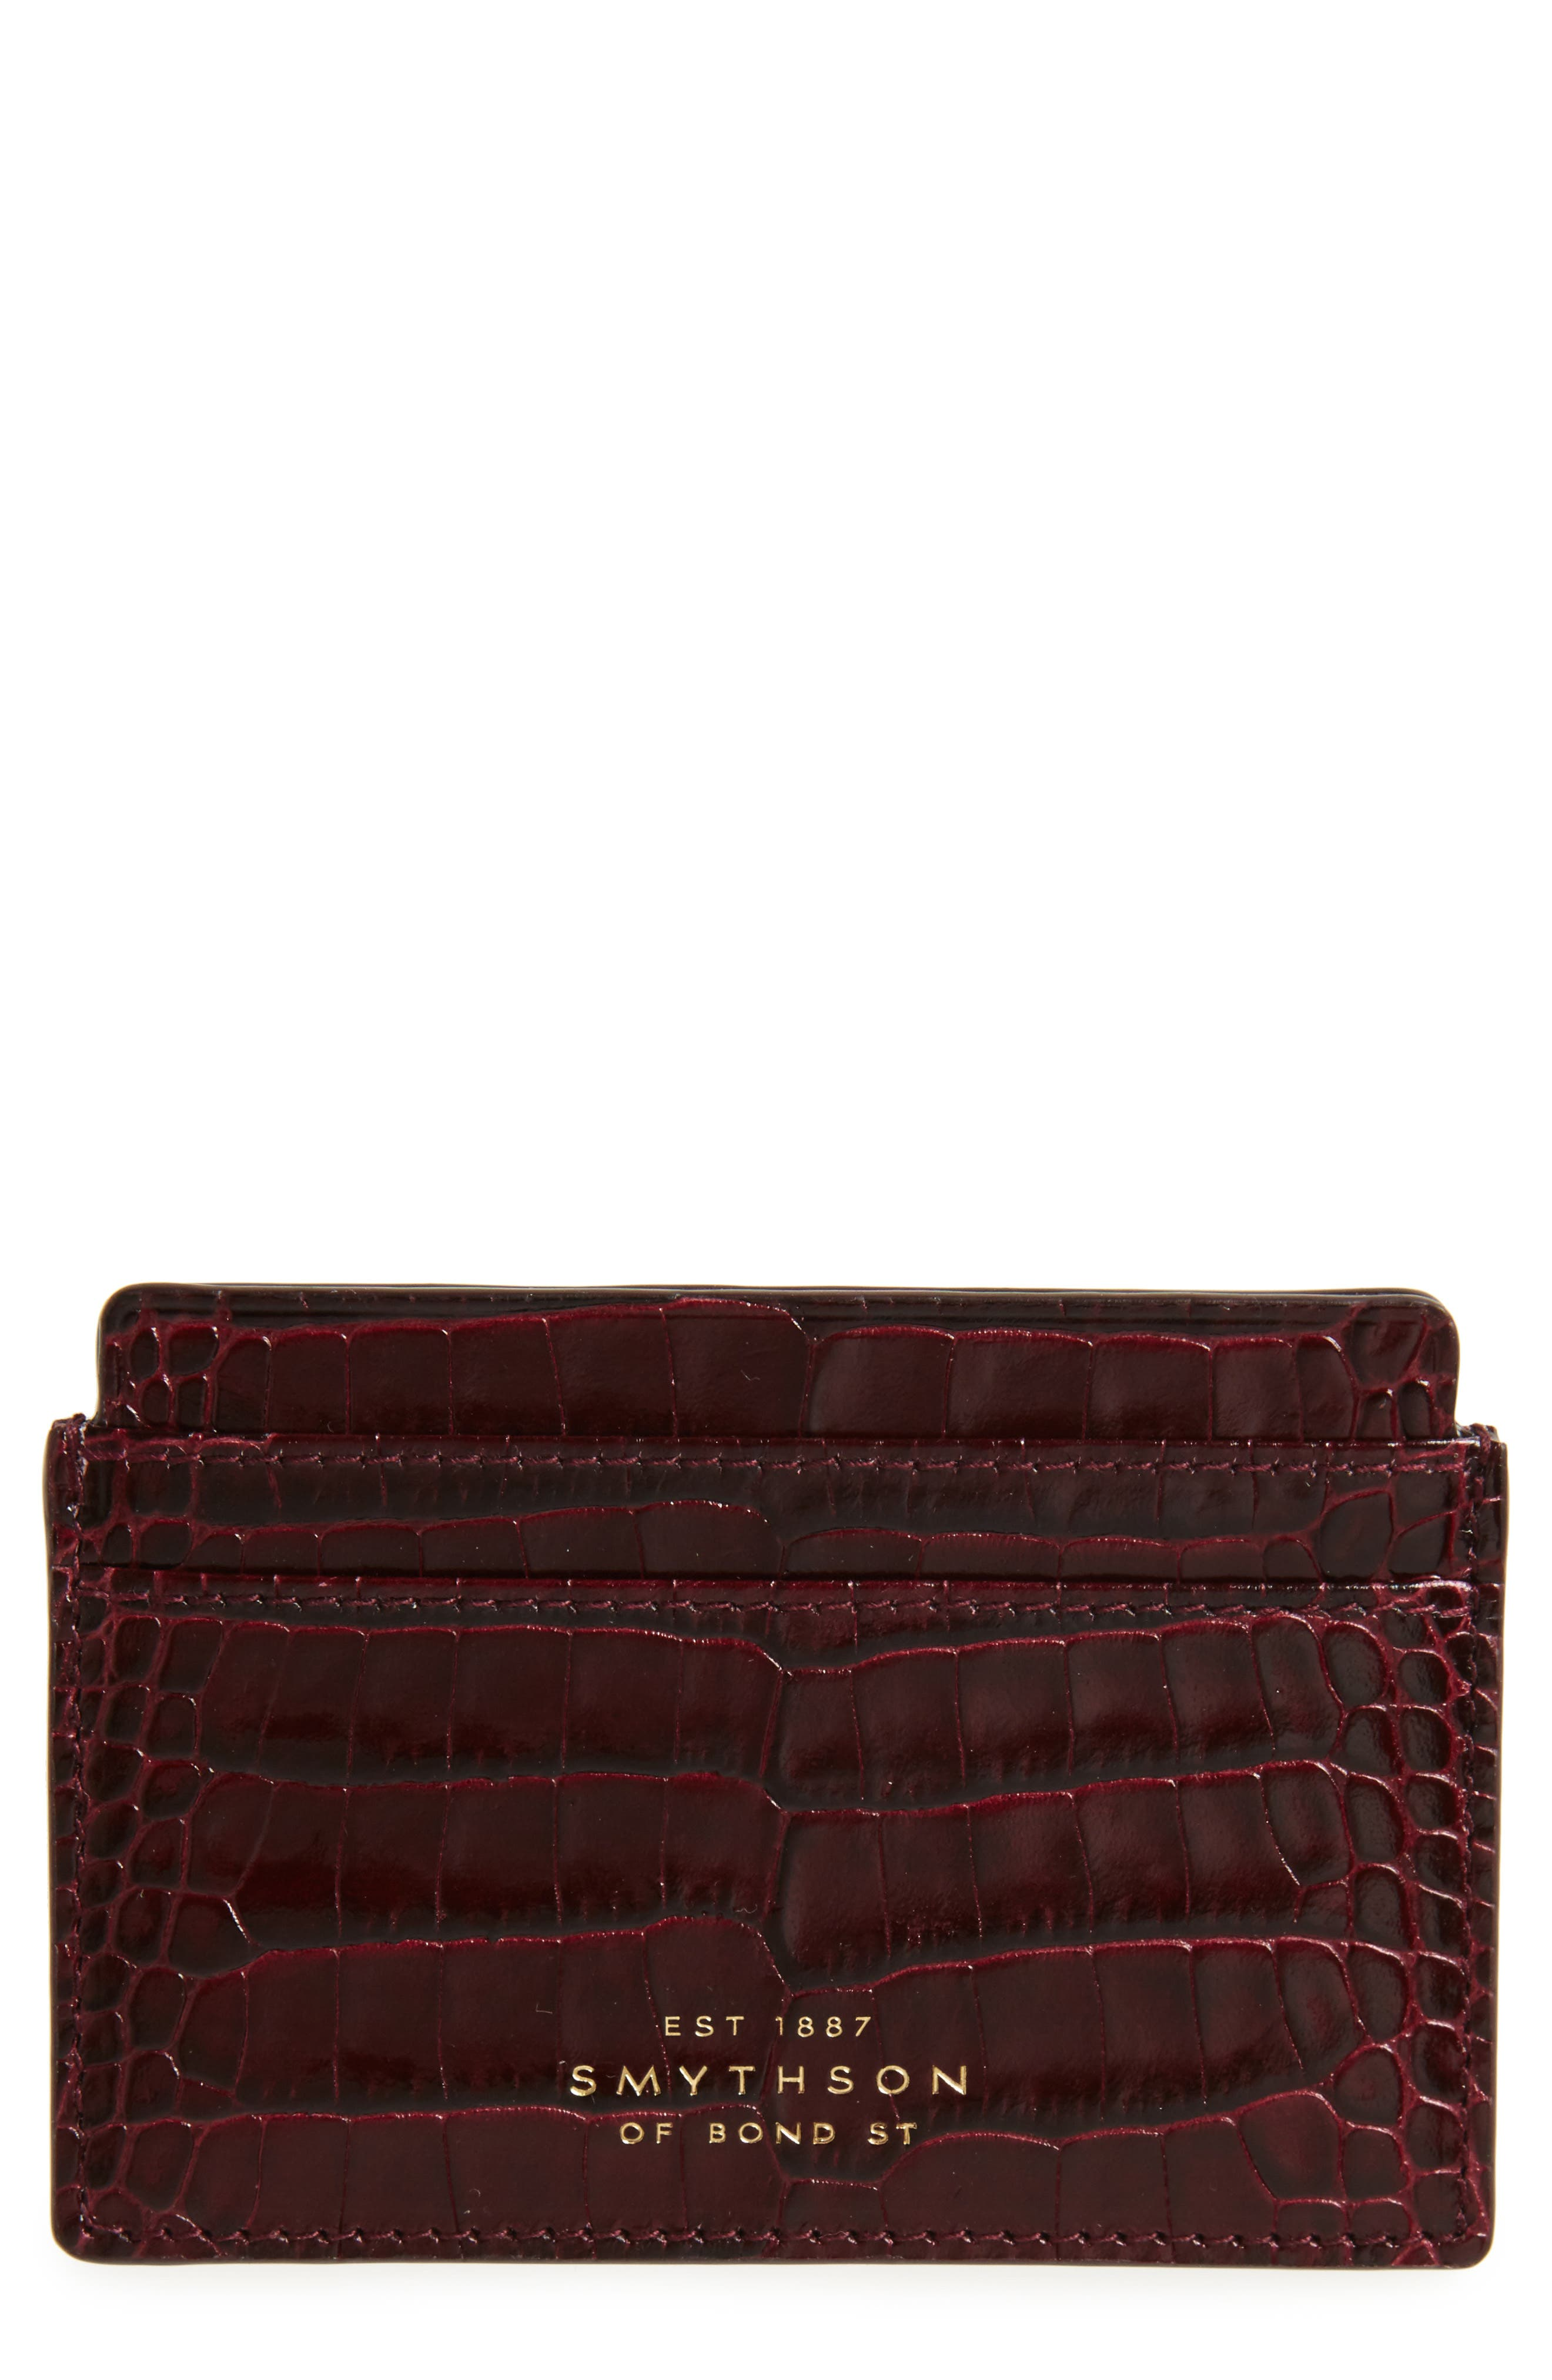 Smythson Mara Tiered Croc Embossed Leather Card Holder